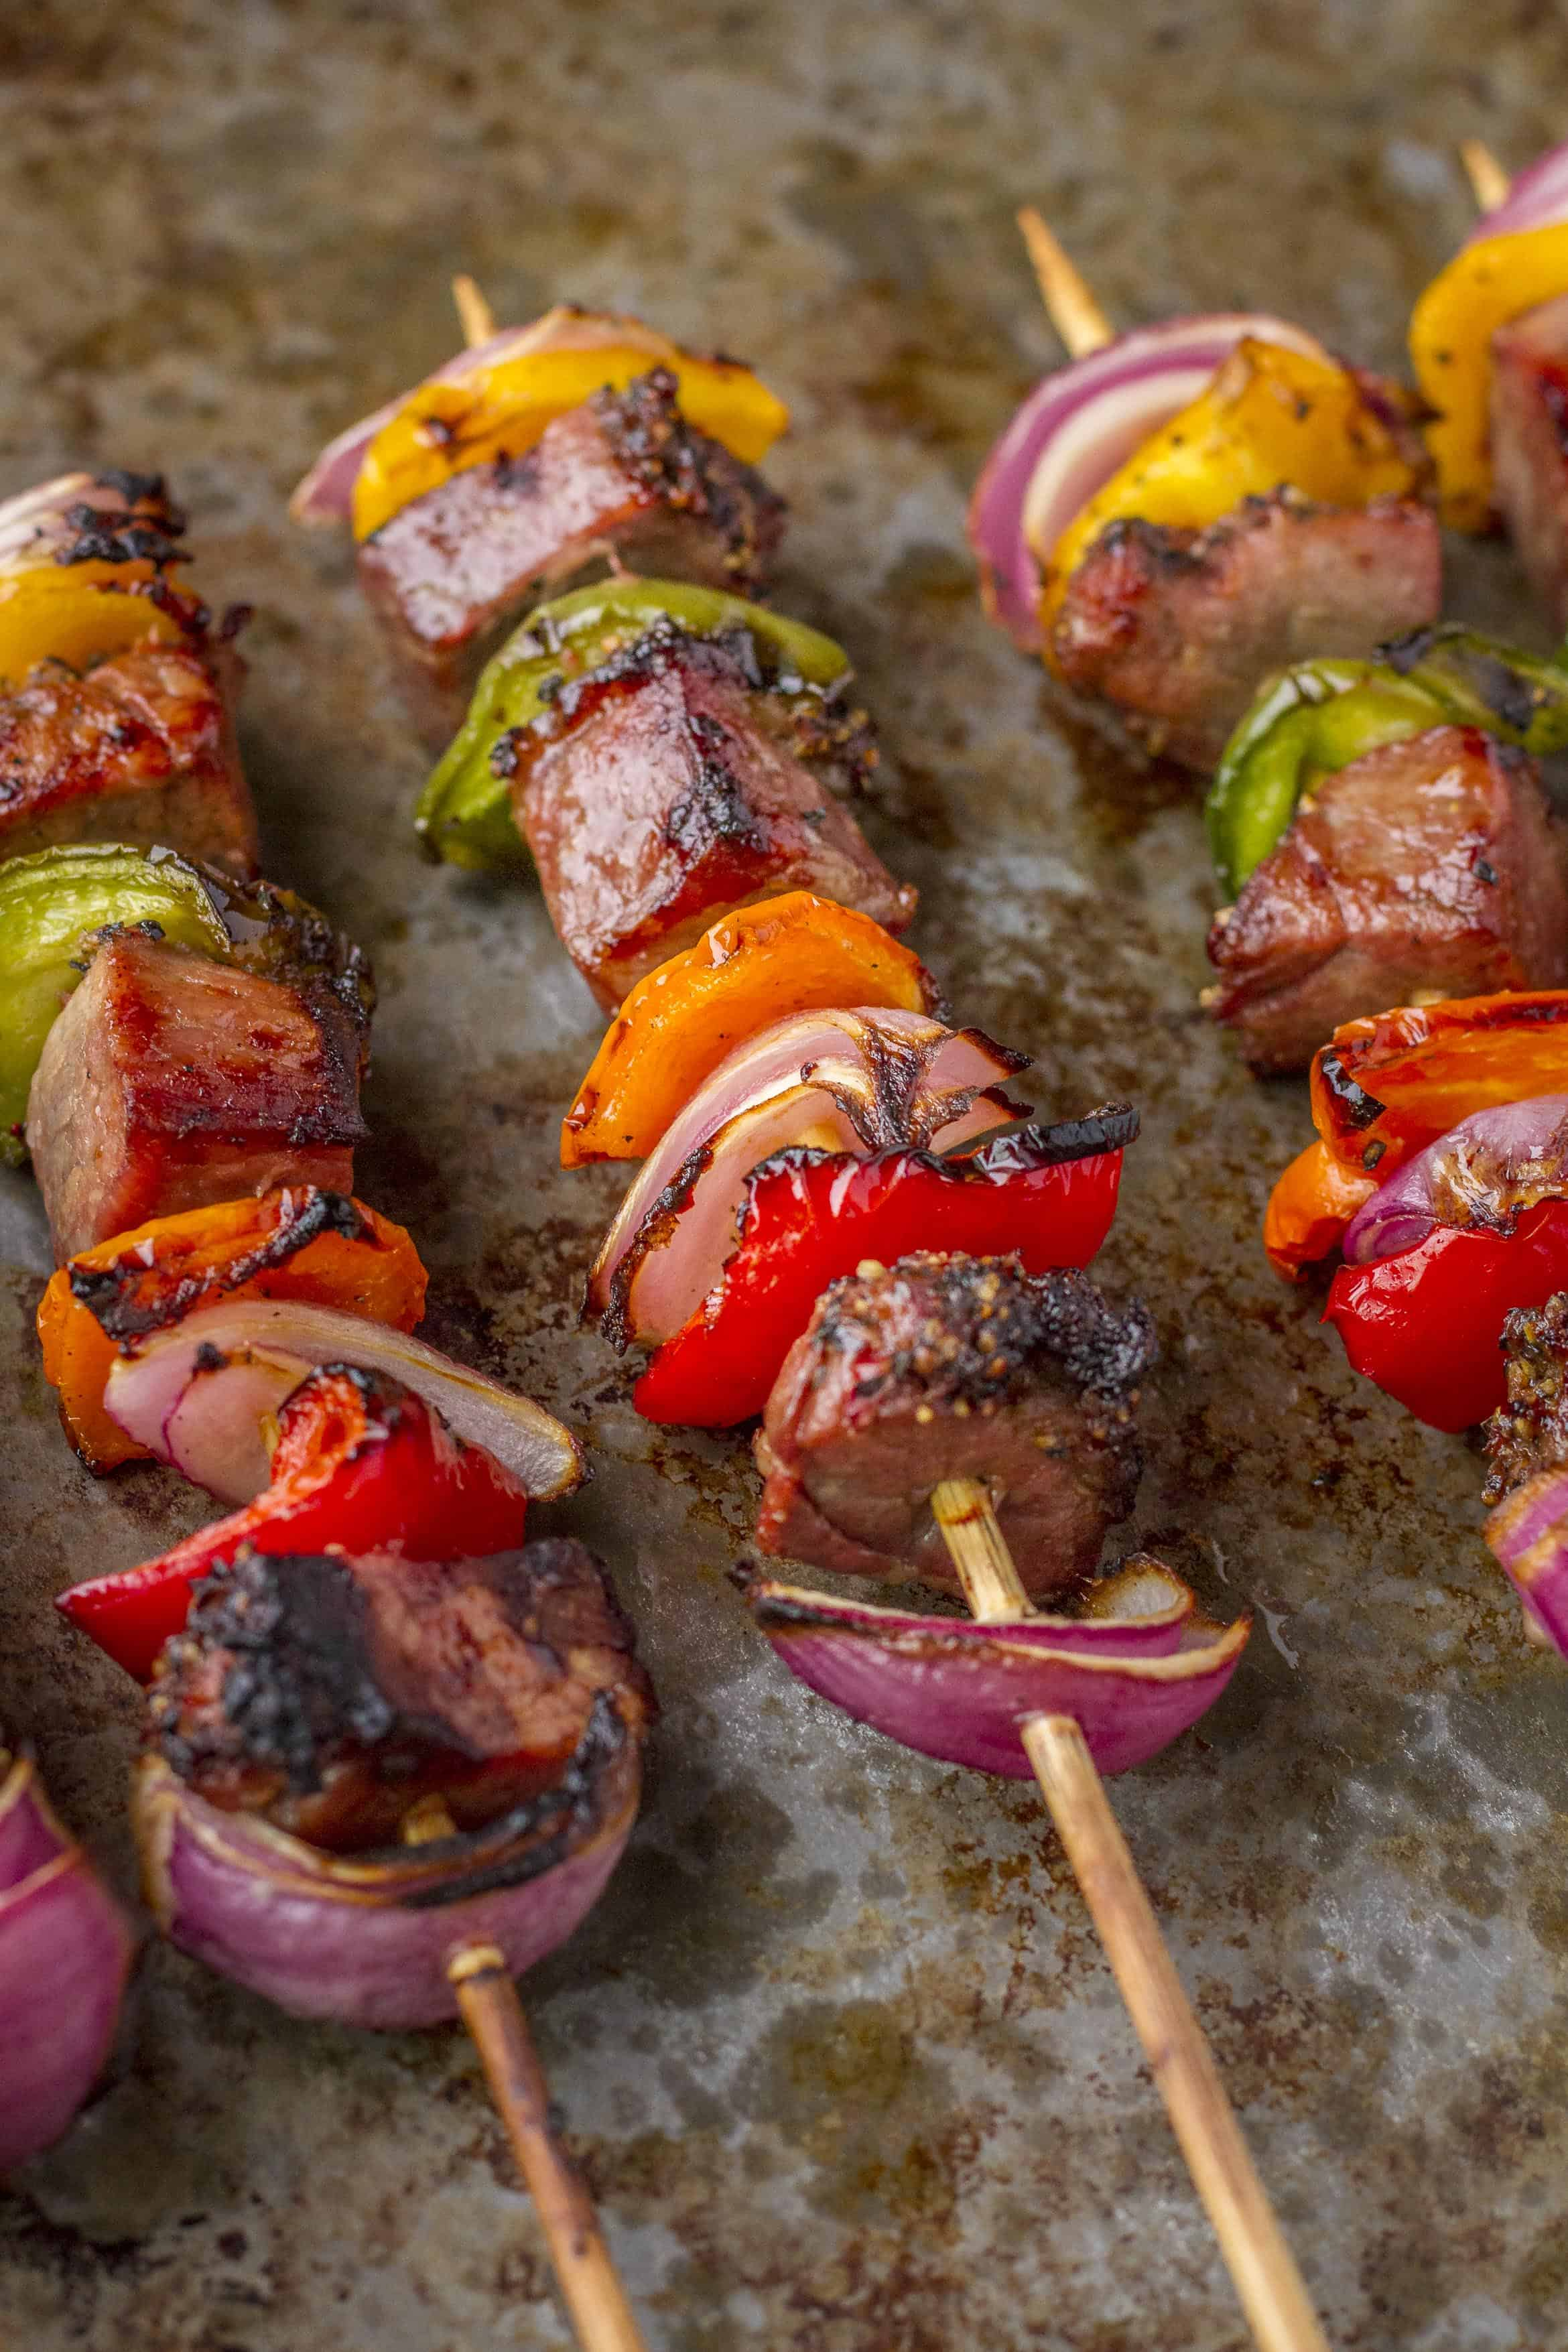 Tri-Tip Beef Kabobs -- Try these delicious tri-tip beef kabobs at your next cookout... Chunks of marinated tri-tip, with colorful red onions and bell peppers, will have your guests lining up for more! | kabobs on the grill | steak kabobs | kabobs recipe | kebabs recipe | get the recipe on unsophisticook.com